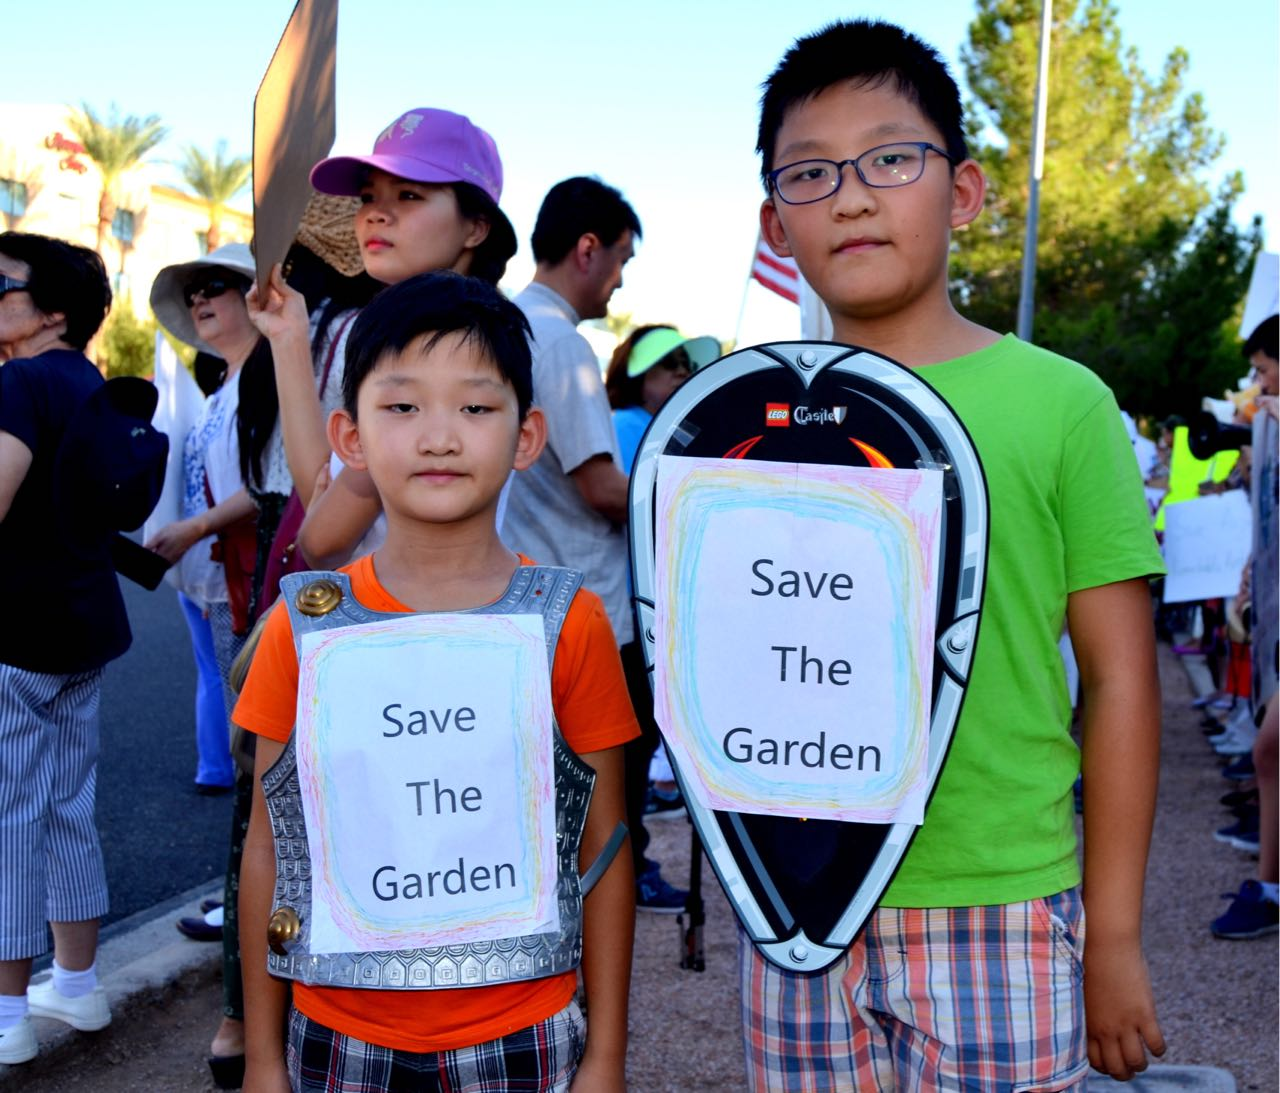 Yuxuan Deng and his young brother Ryan Deng at the protest against demolition of Chinese Cultural Center on August 20, 2017